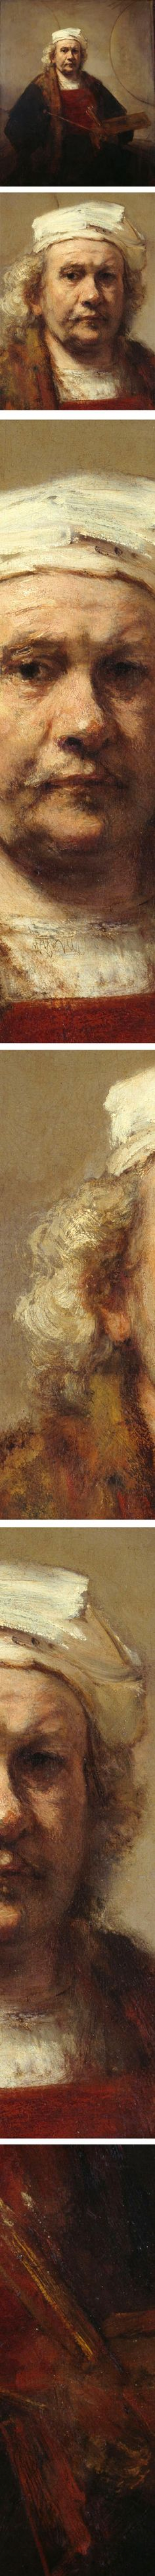 Rembrandt, Self-portrait with Two Circles, c. 1665/1669